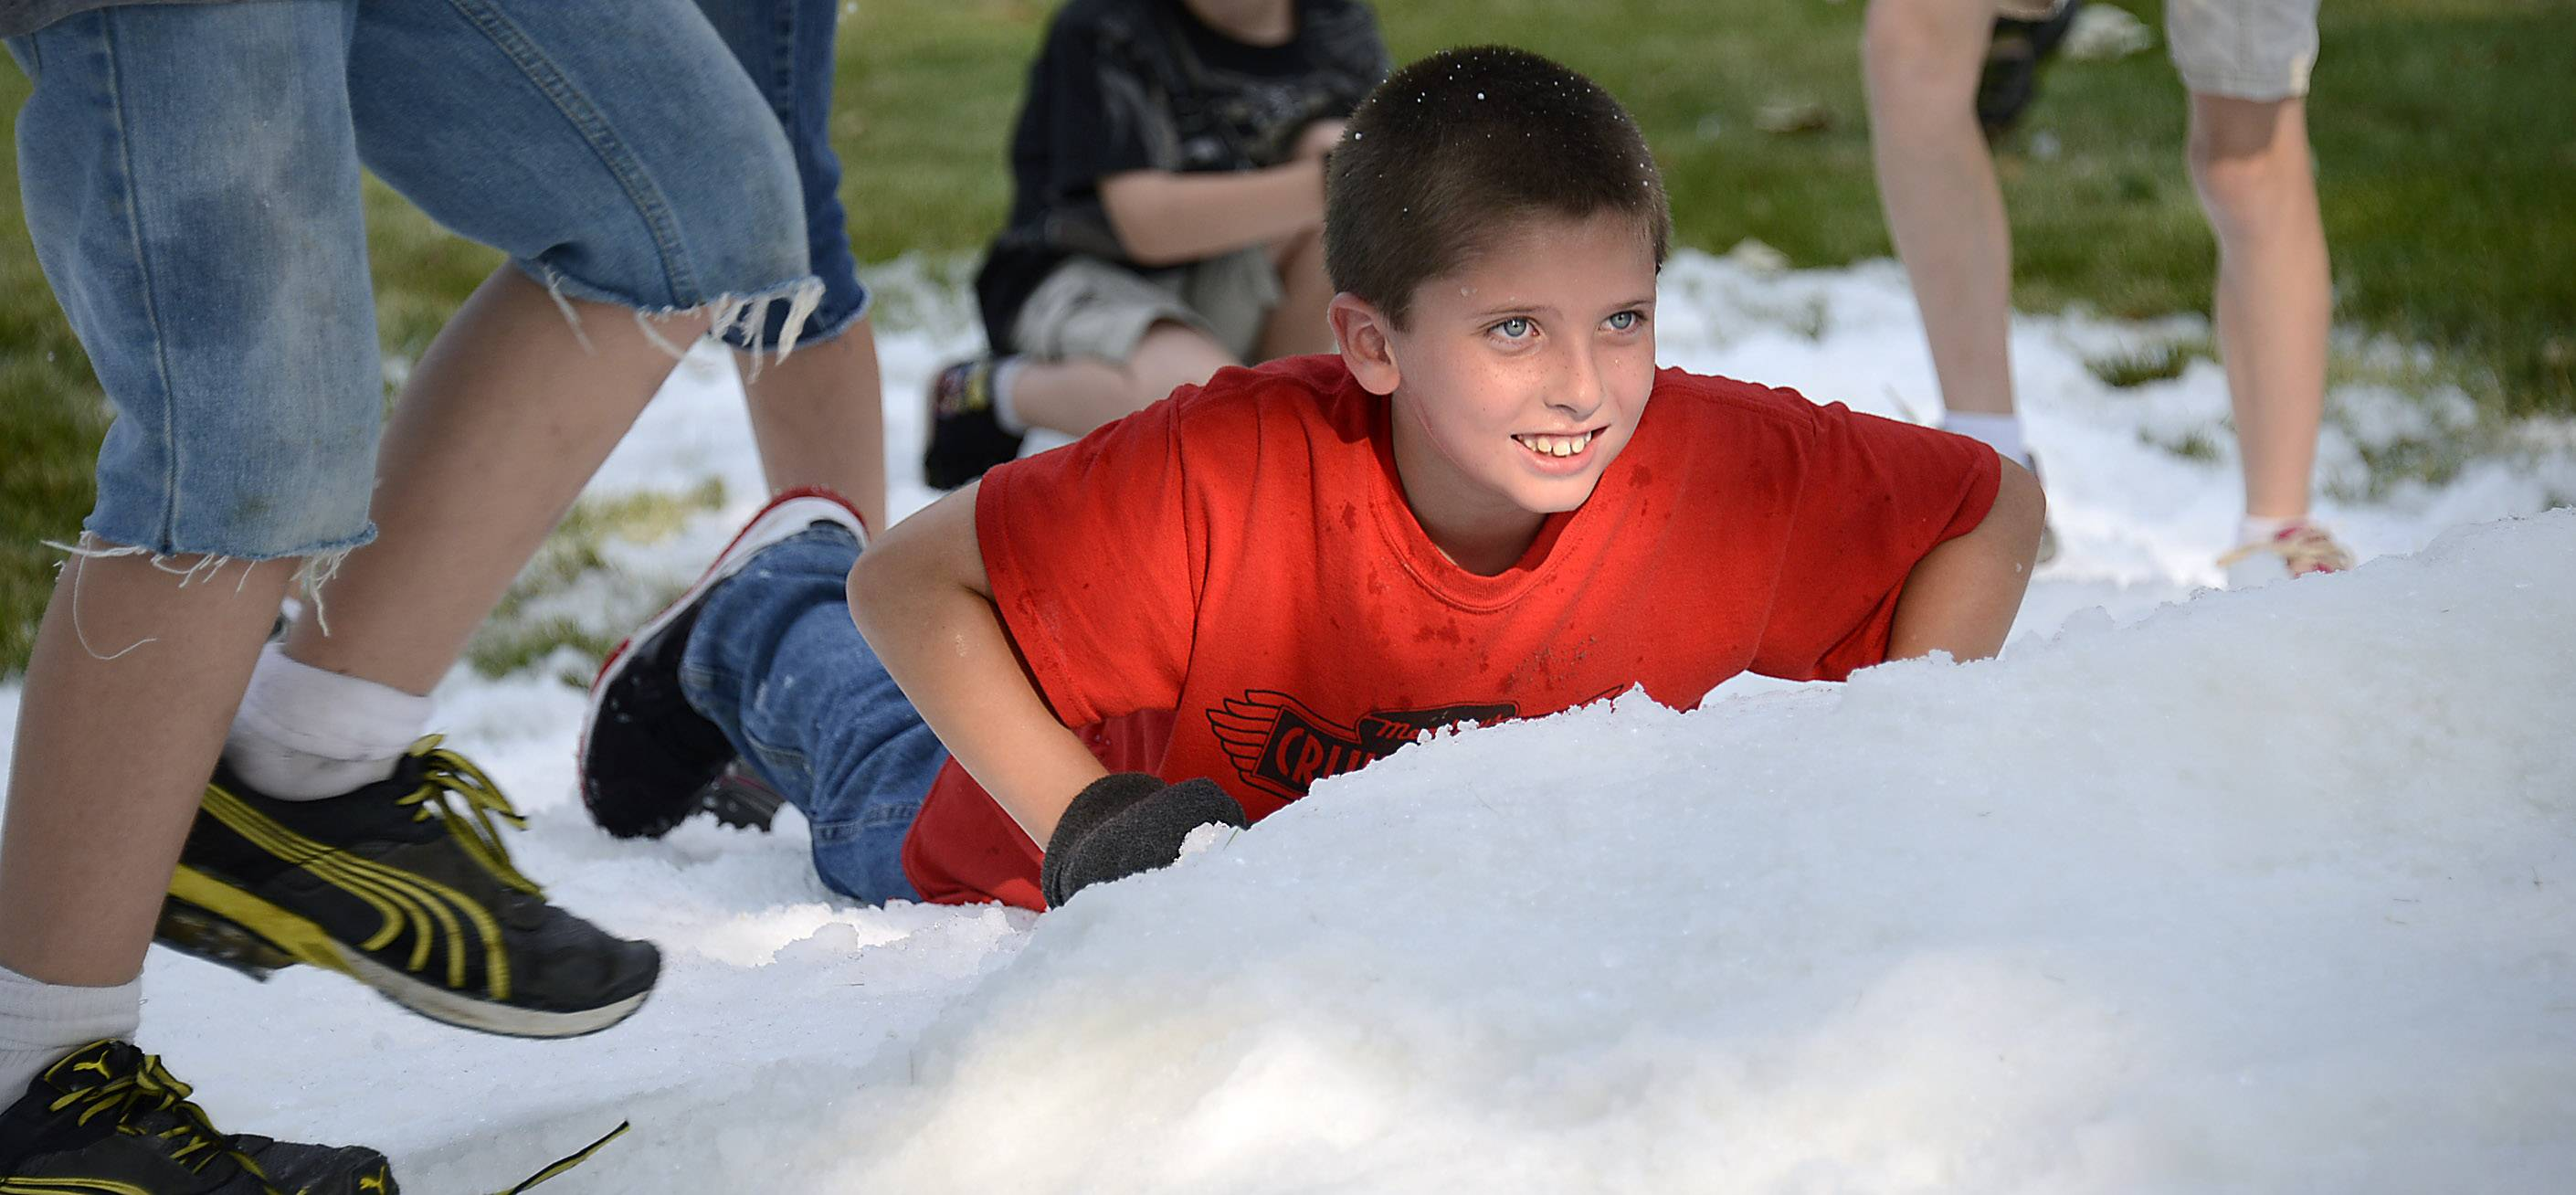 "Seth Hildebrant, 8, of Palatine plays in the snow Friday night before the outdoor showing of the movie ""Frozen"" at Meadows Christian Fellowship Church in Rolling Meadows"